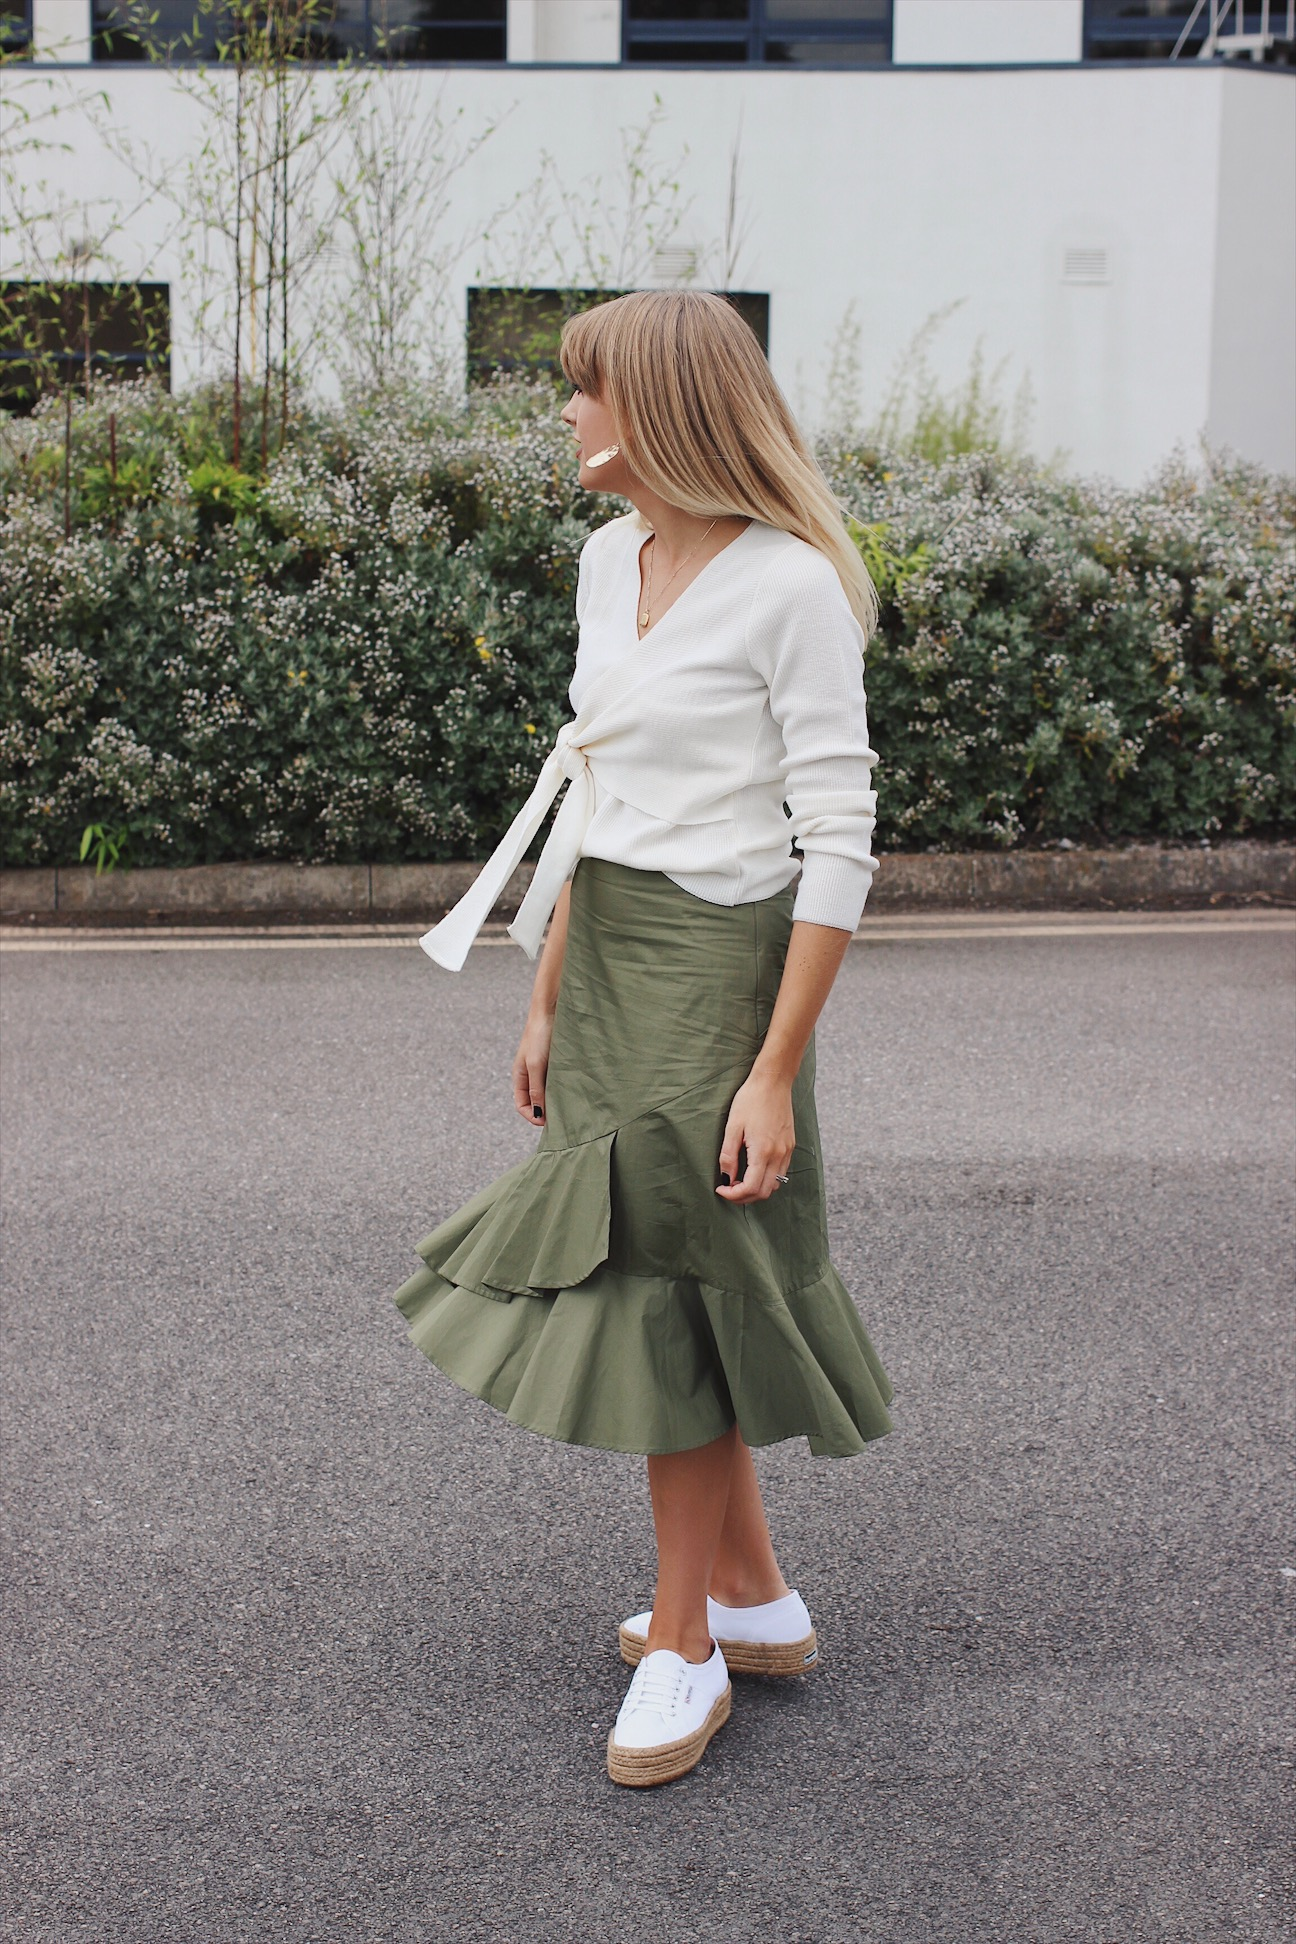 Charlotte Buttrick affordable high street fashion blogger